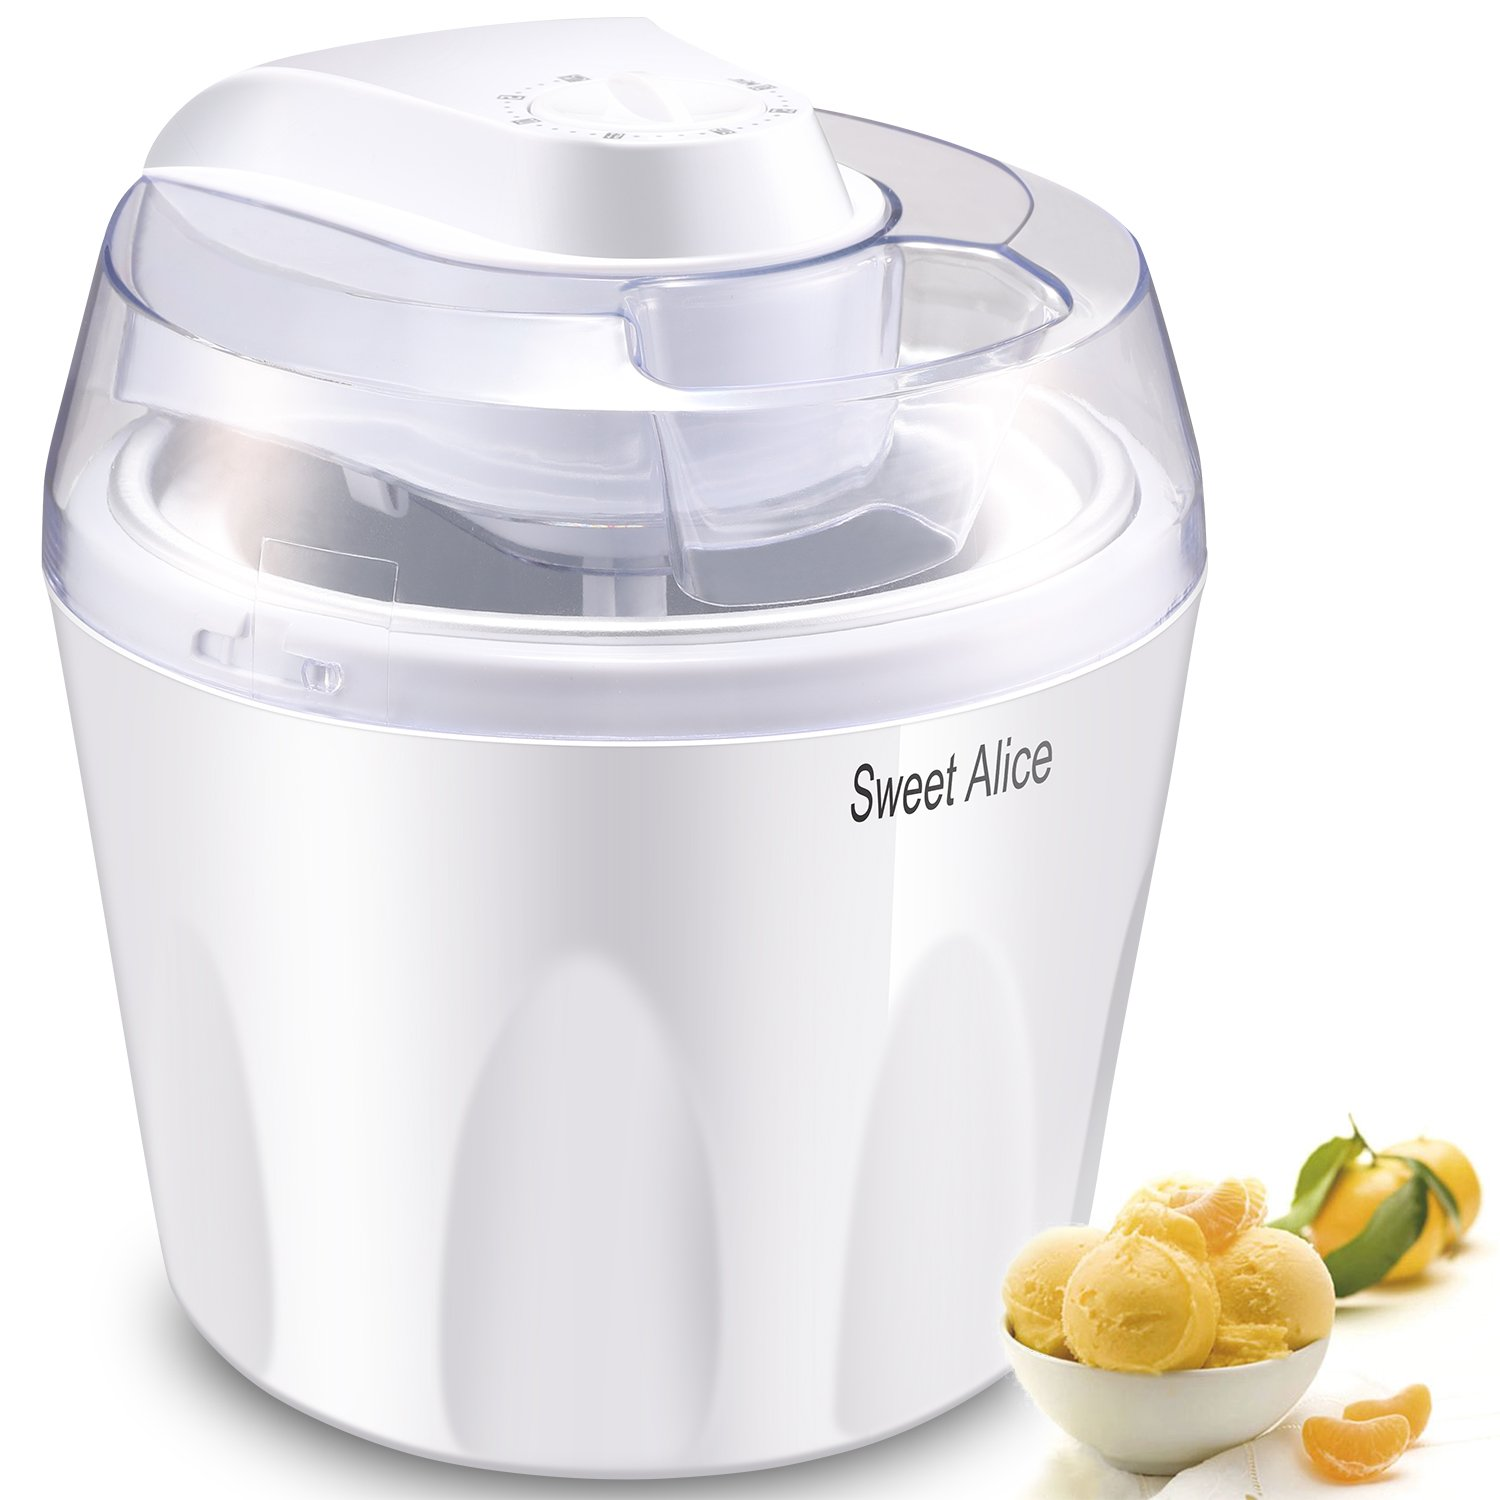 Ice Cream Maker, Sweet Alice 1.5 Quart Ice Cream Machine with Timer Auto Shut-off, BPA Free for Kids DIY Soft-Serve Ice Cream, Frozen Yogurt, Sorbet Maker for Home